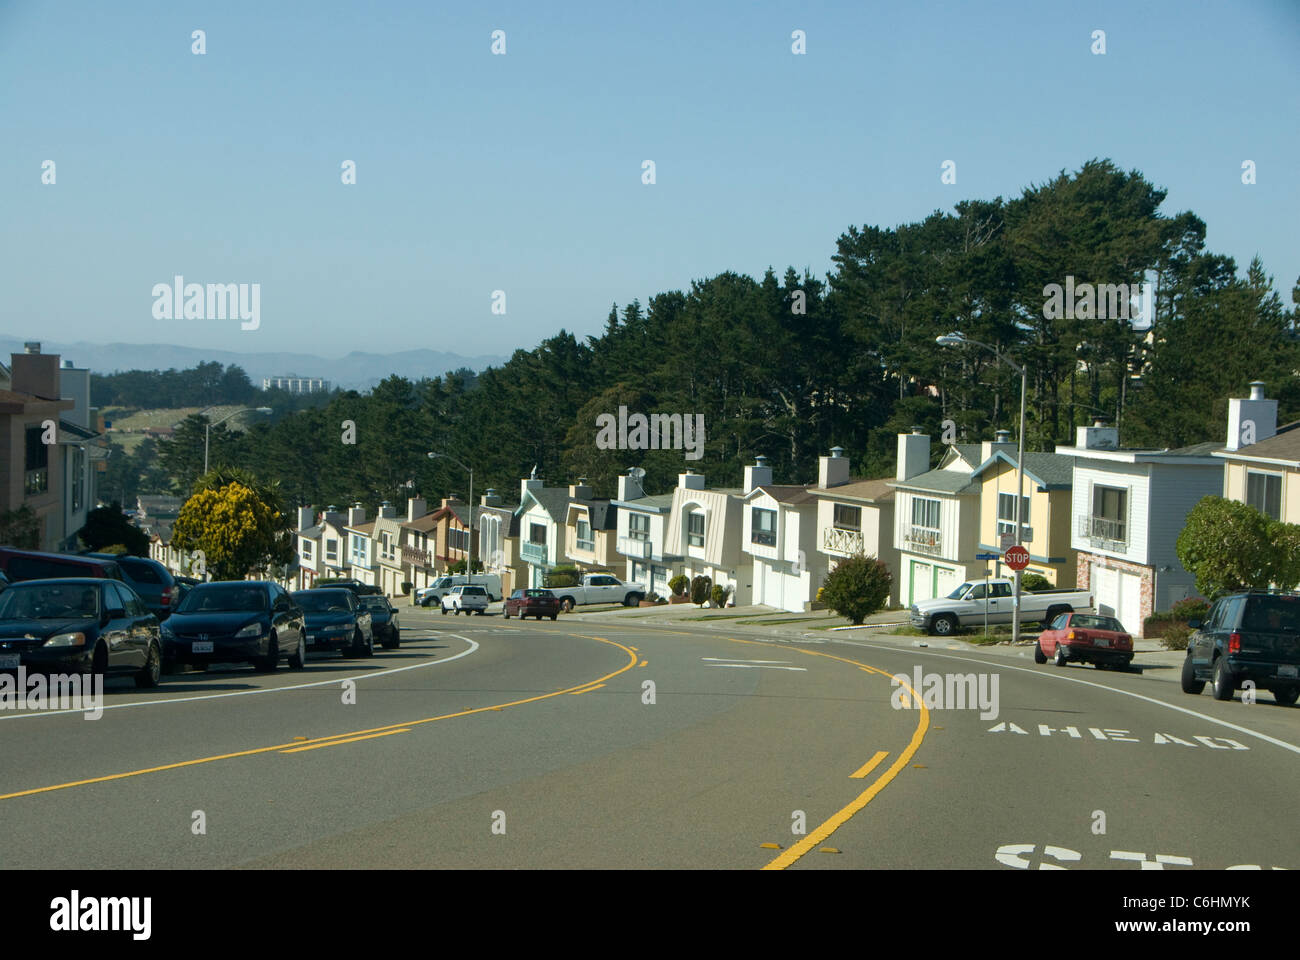 Daly City Stock Photos & Daly City Stock Images - Alamy